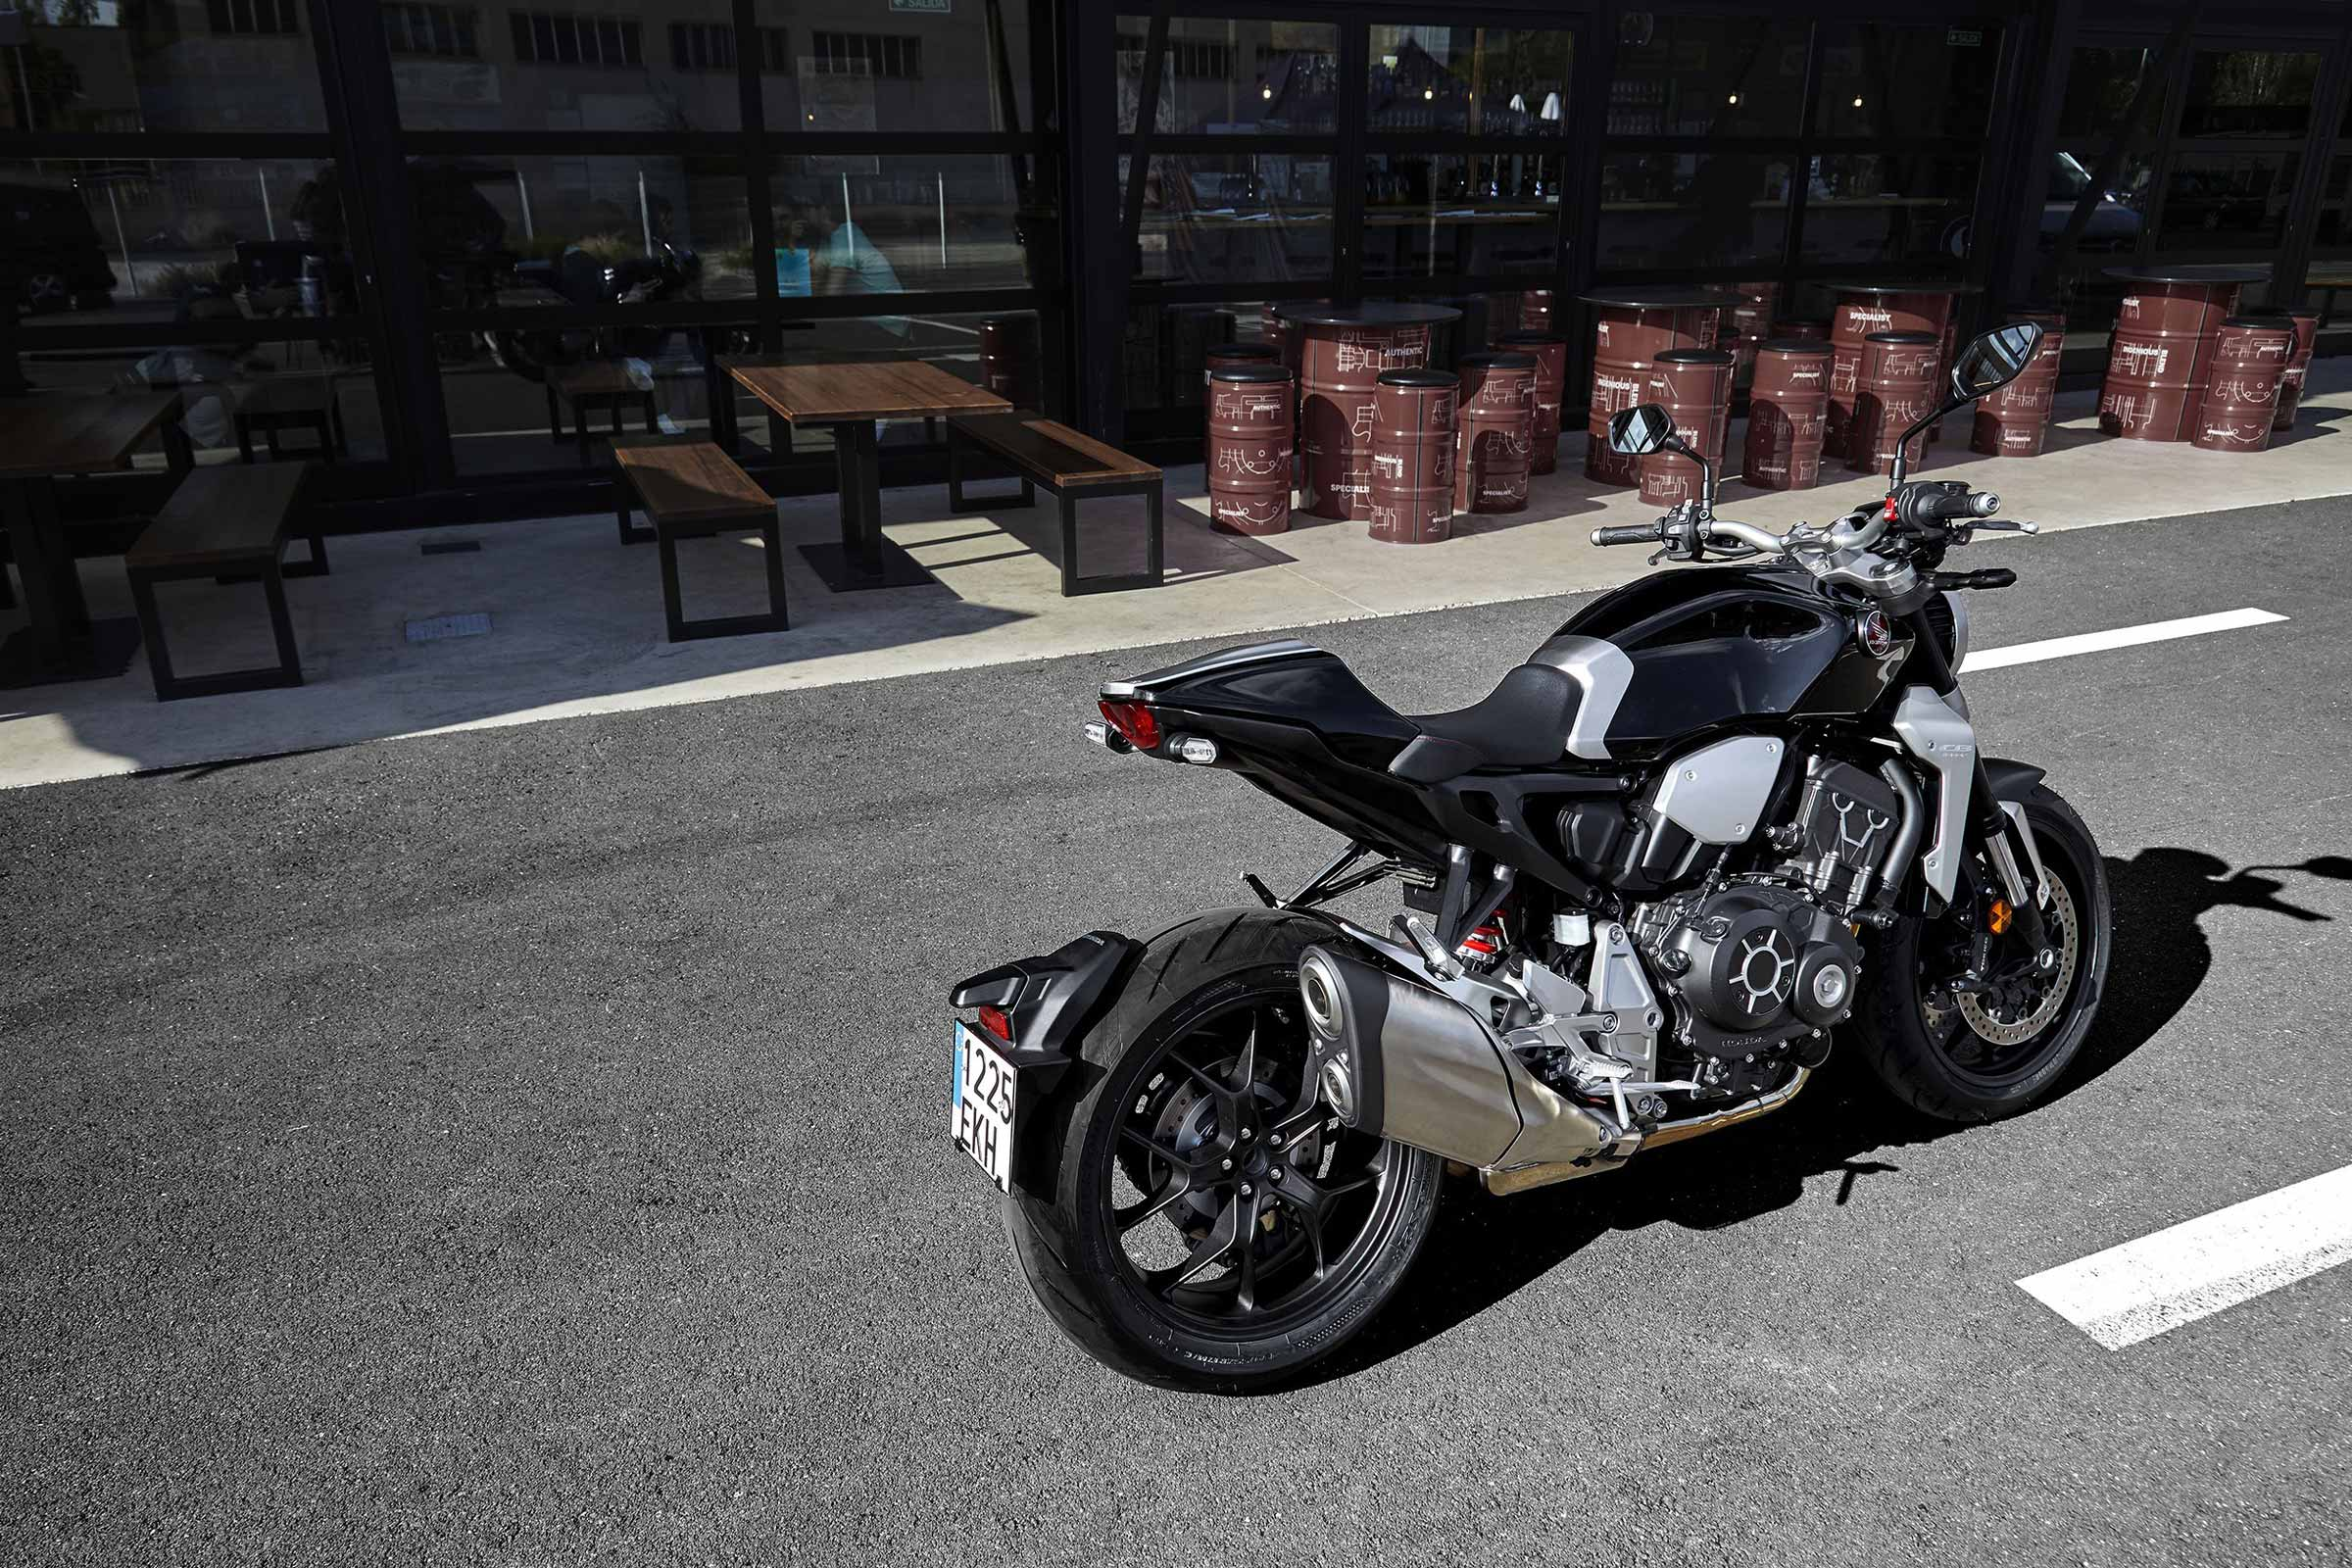 Honda Cb1000r With Neo Sports Cafe Styling Hey Gents